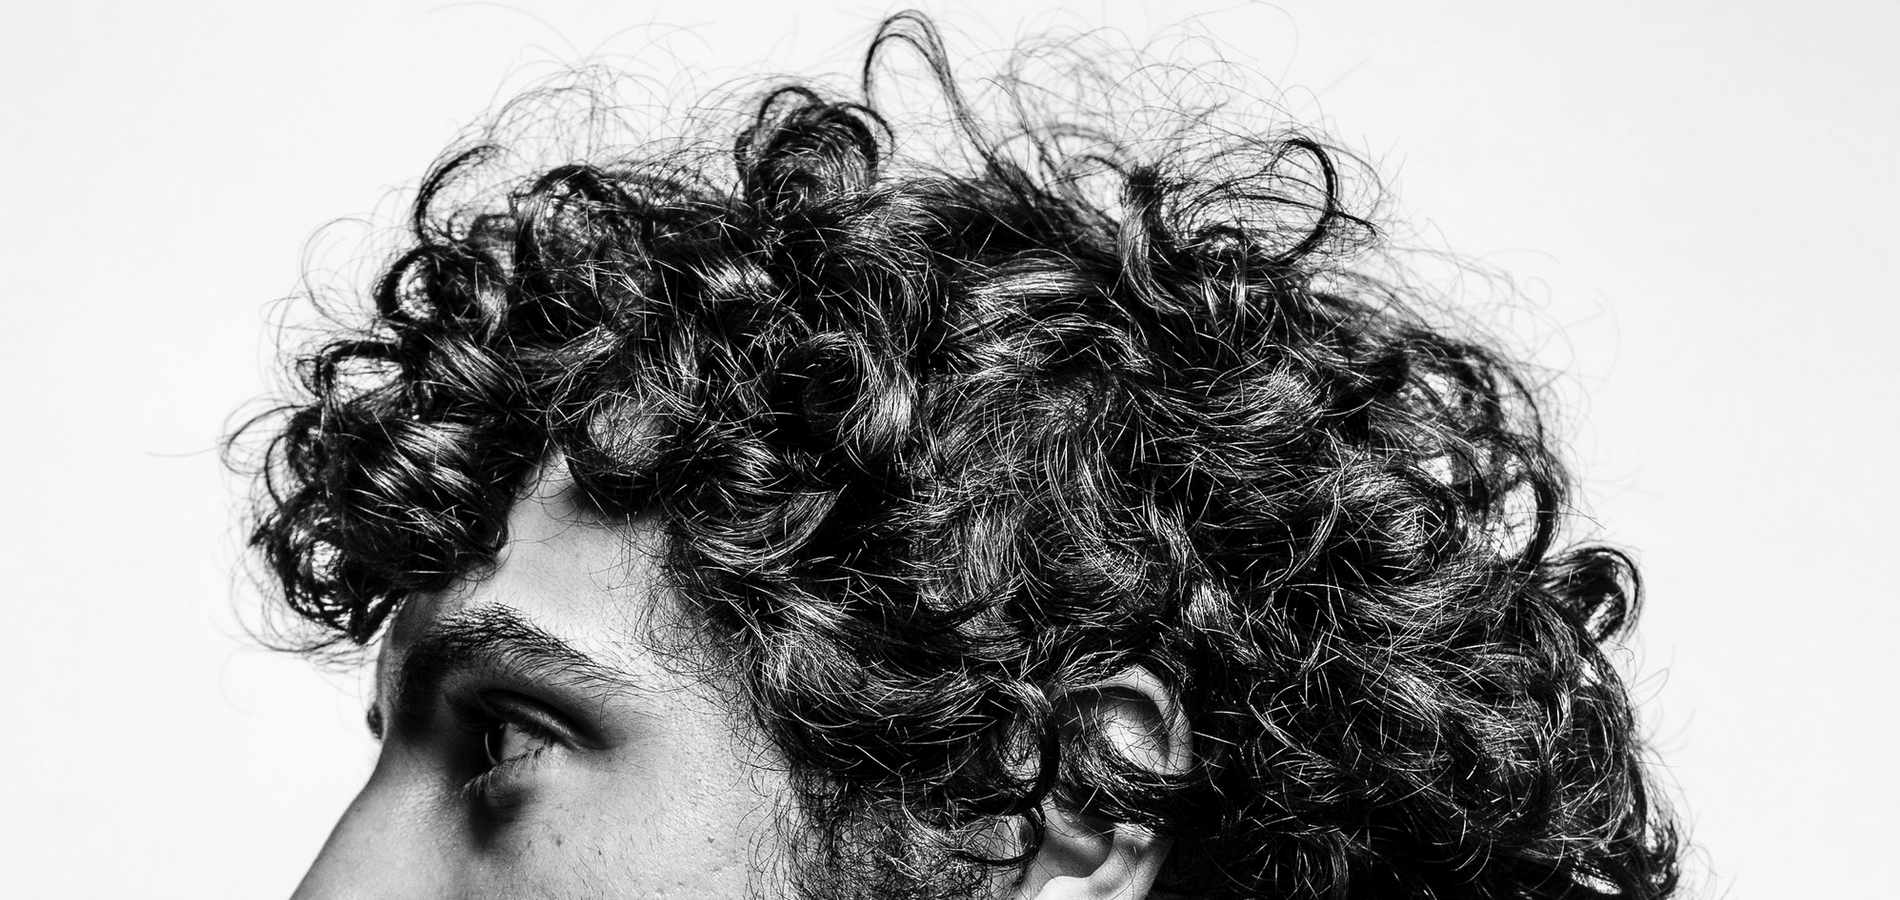 Why Do Orthodox Jewish Men Have Sidecurls?